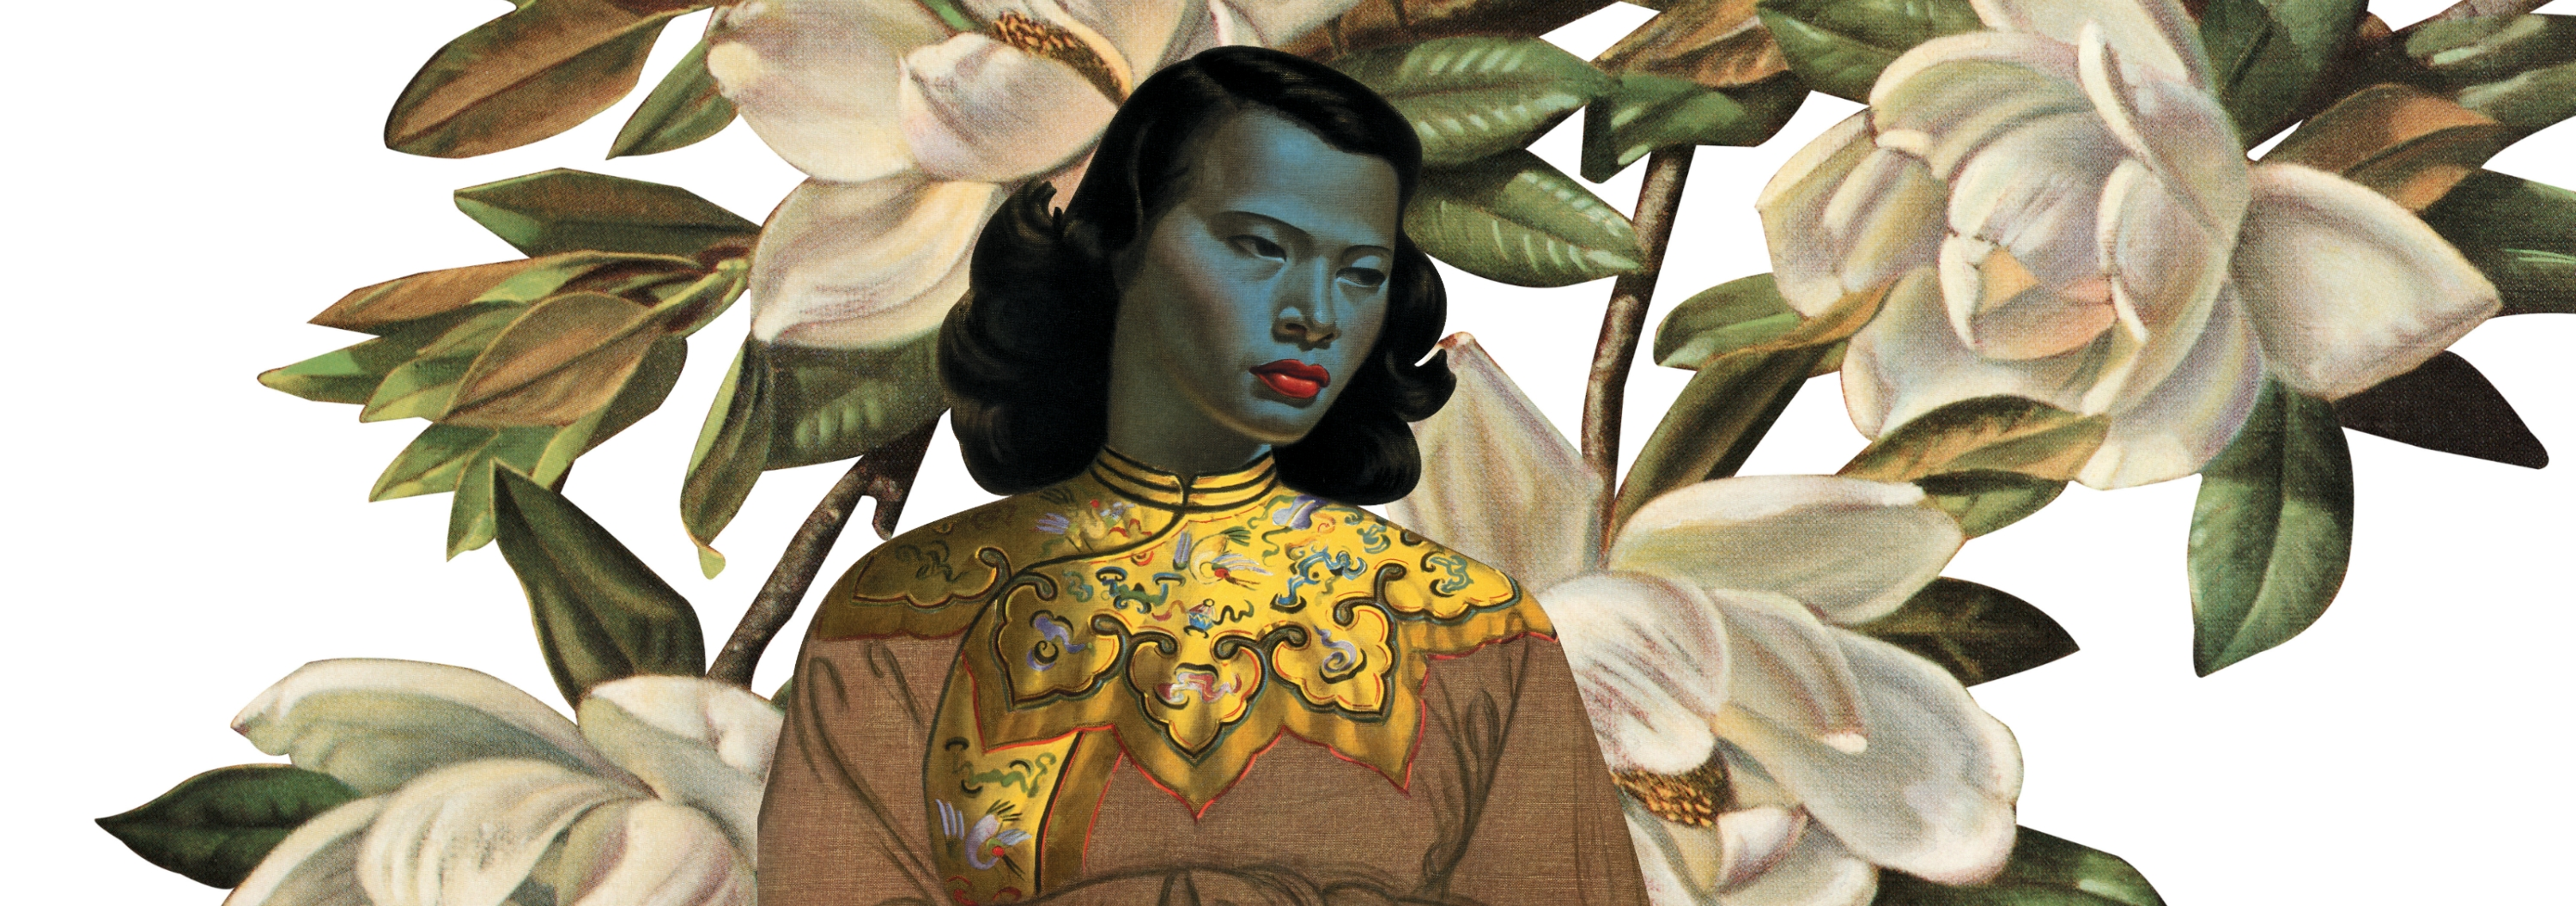 New Tretchikoff  Artwork combining Chinese Girl and Magnolias